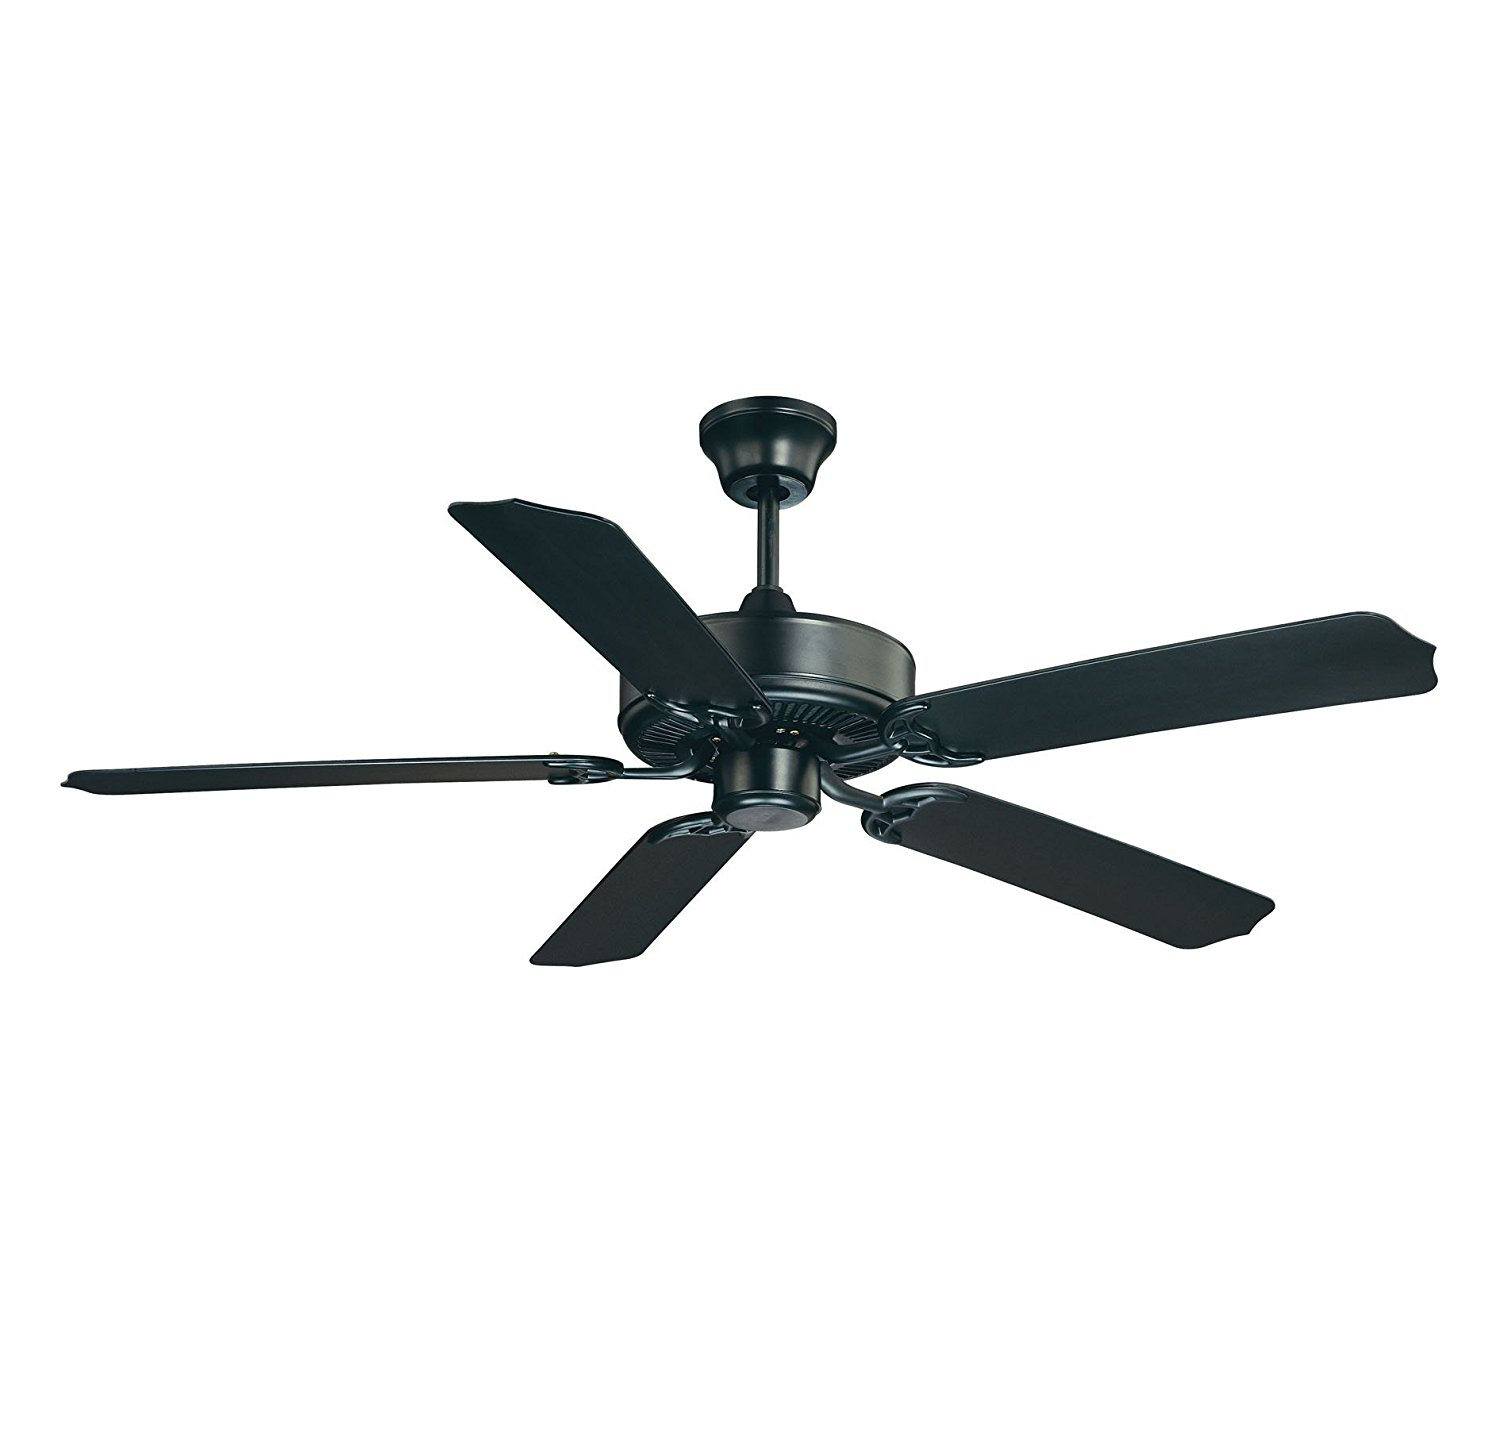 "Savoy House Nomad 52"" Outdoor Ceiling Fan in Flat Black 52-EOF-5MB-FB"